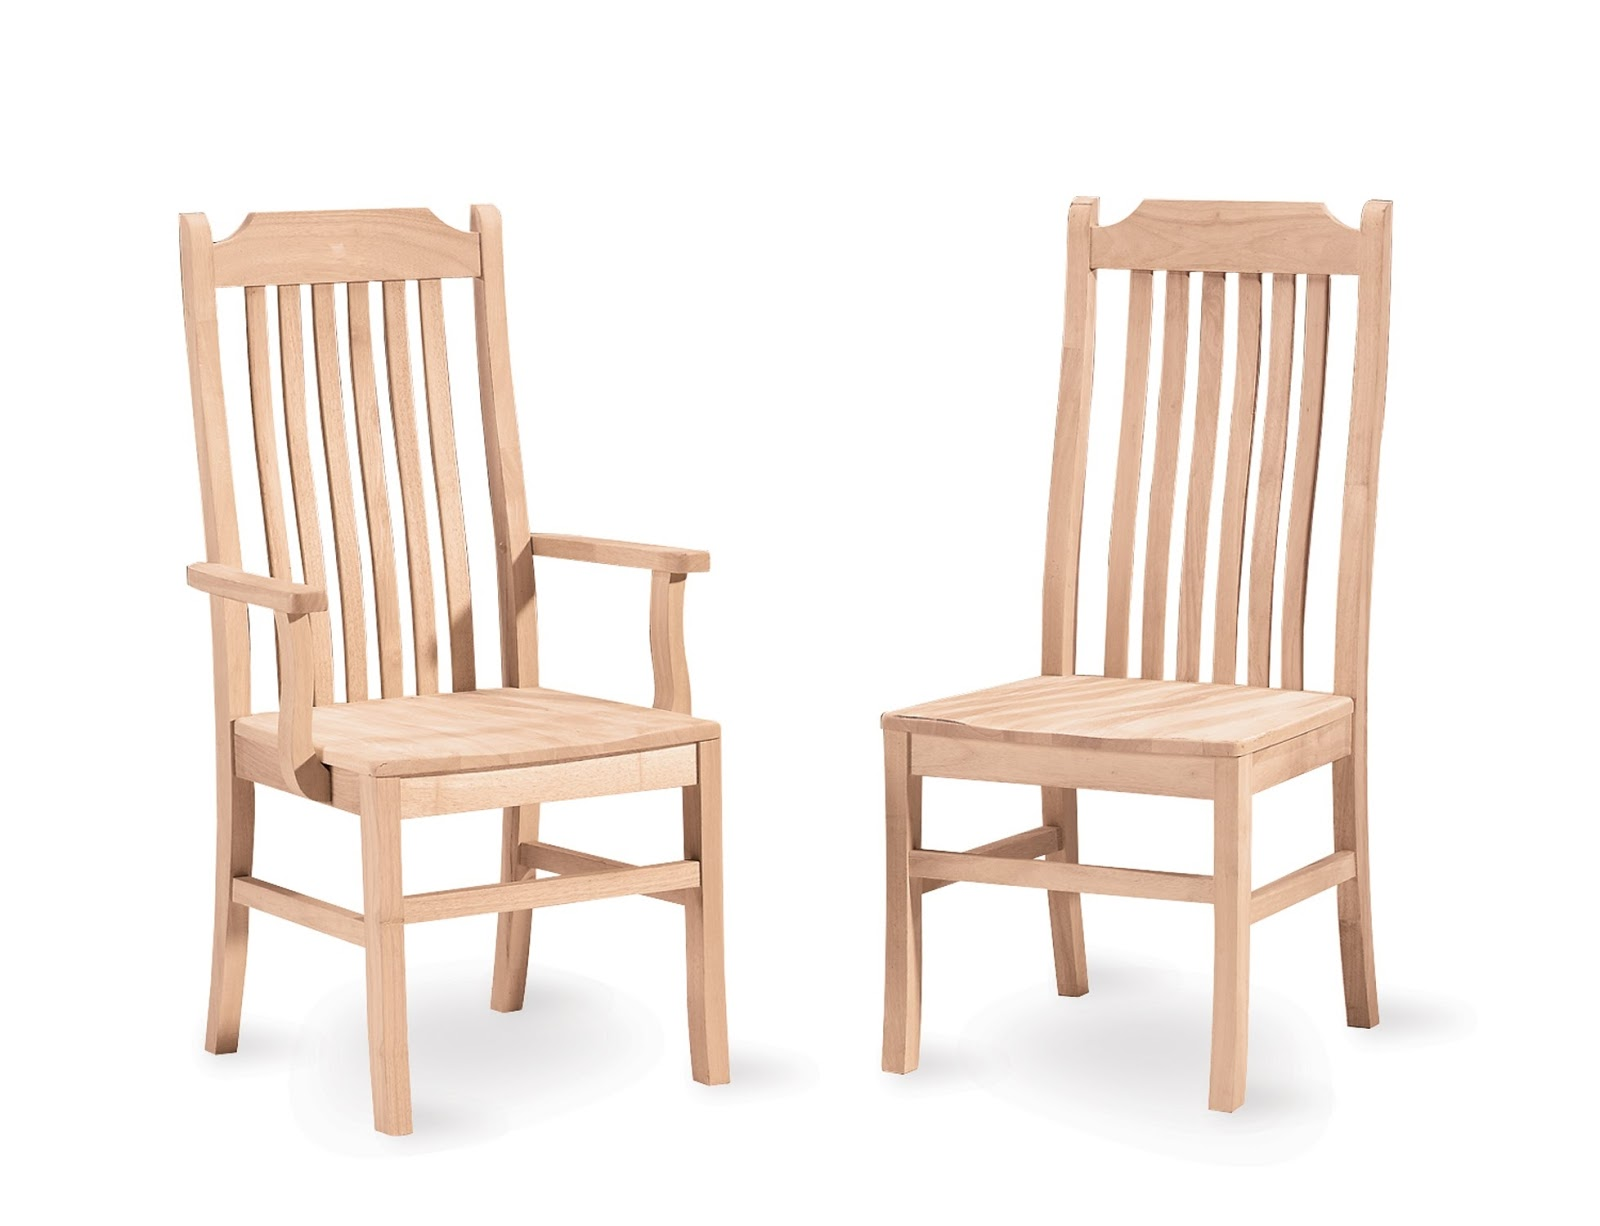 unfinished oak chairs for house